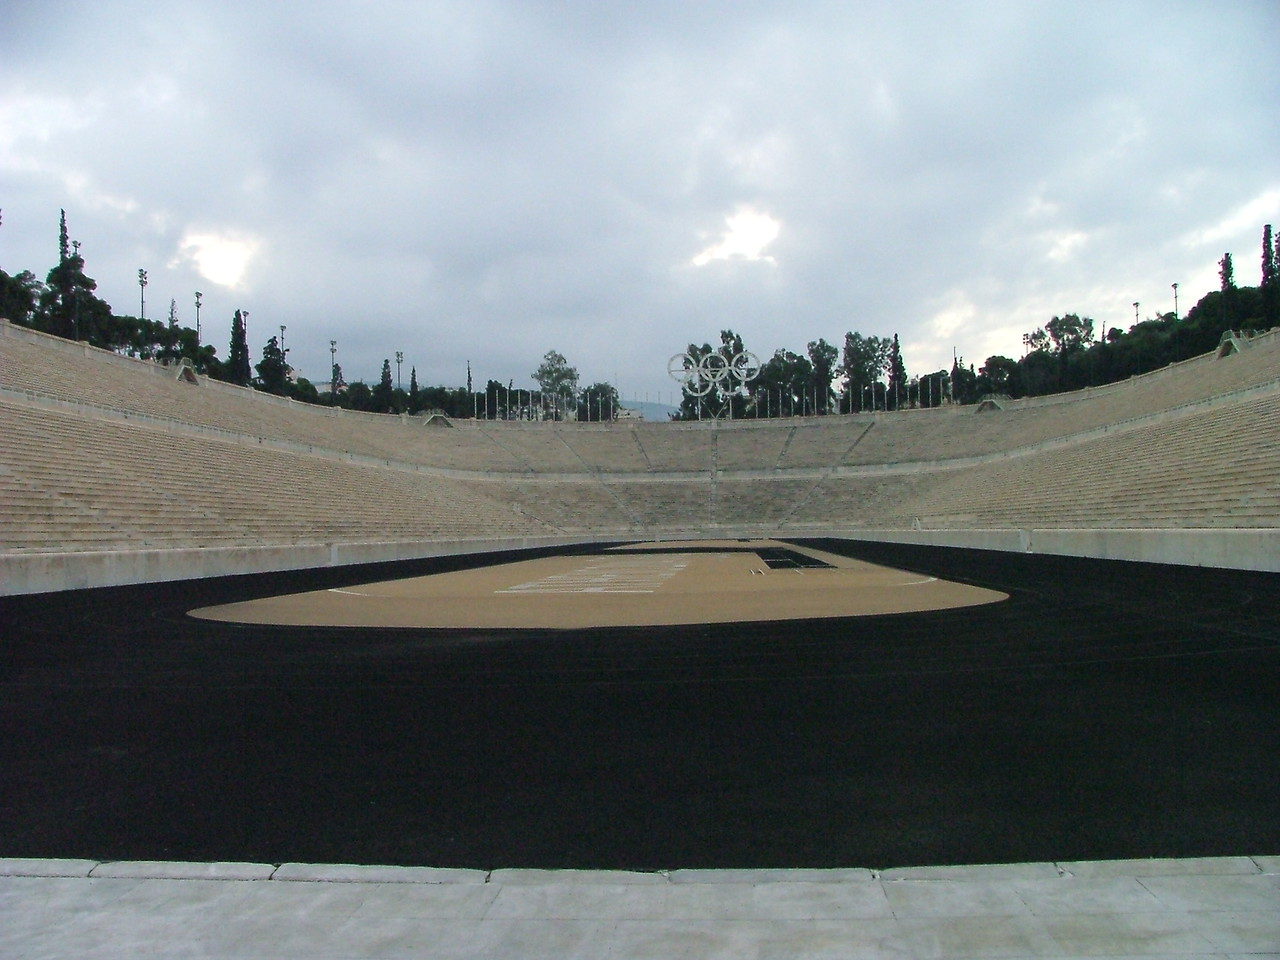 Stadium from the first modern-day Olympics (1896)